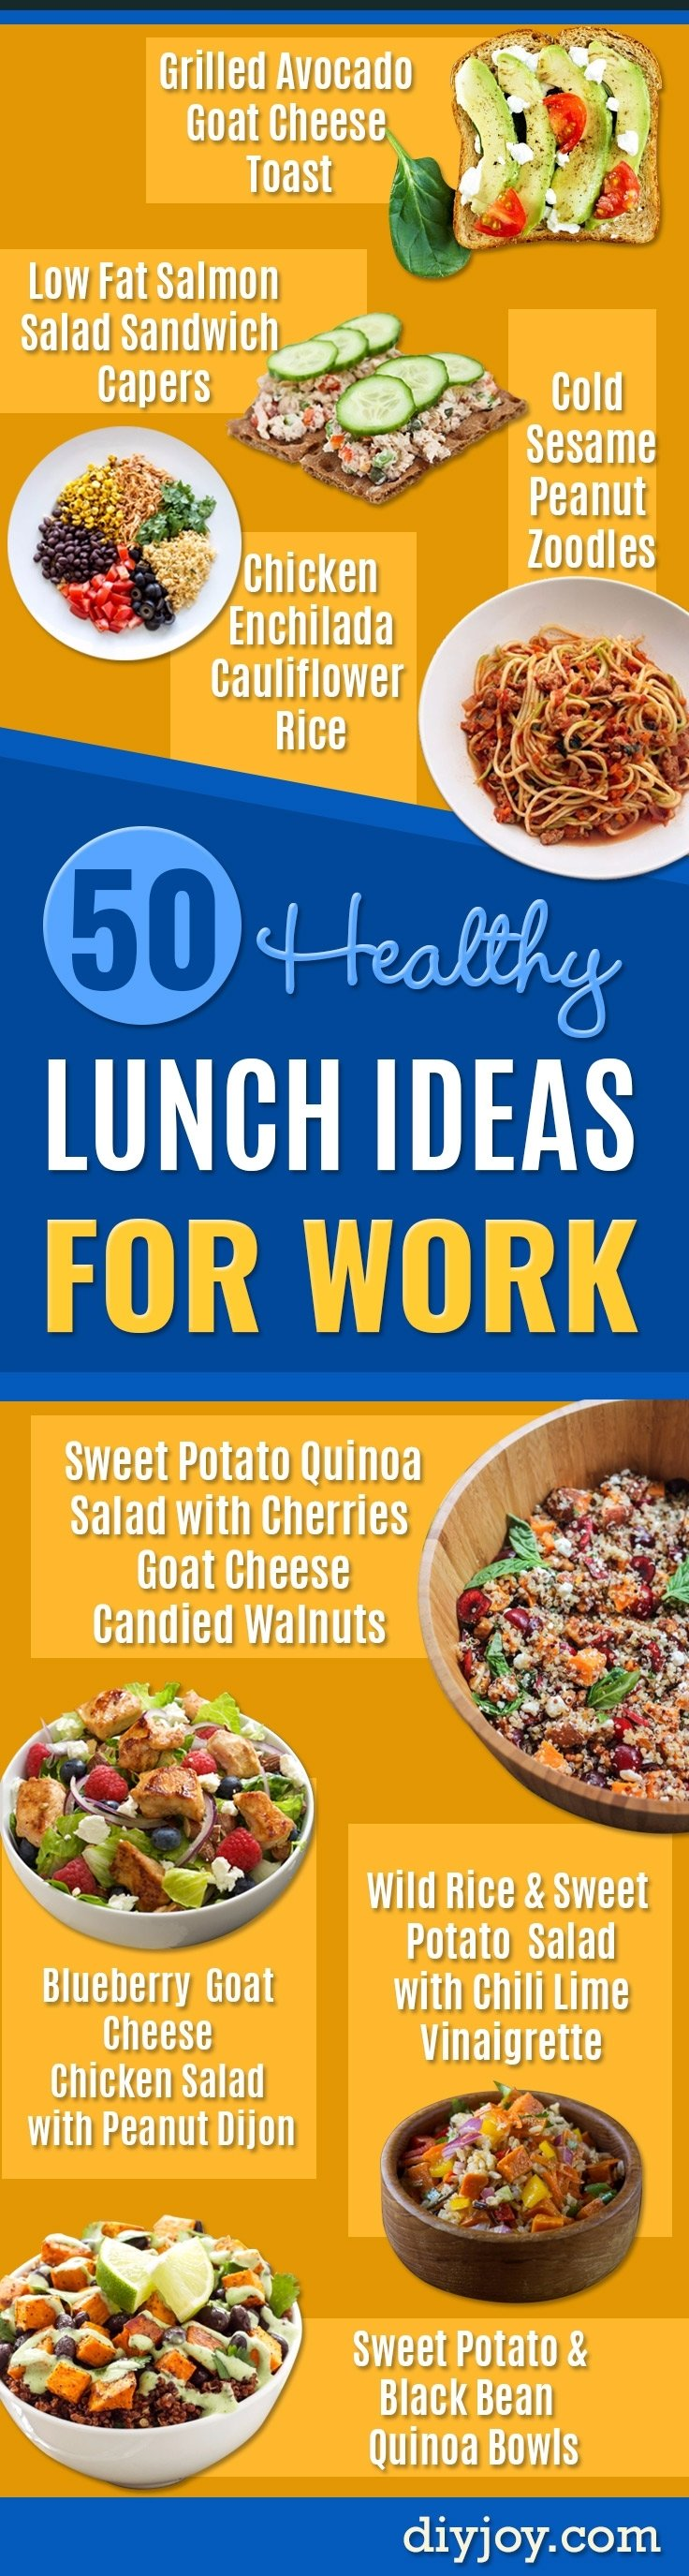 10 Great Low Fat Lunch Ideas For Work 50 healthy but awesome lunch ideas for work 2020